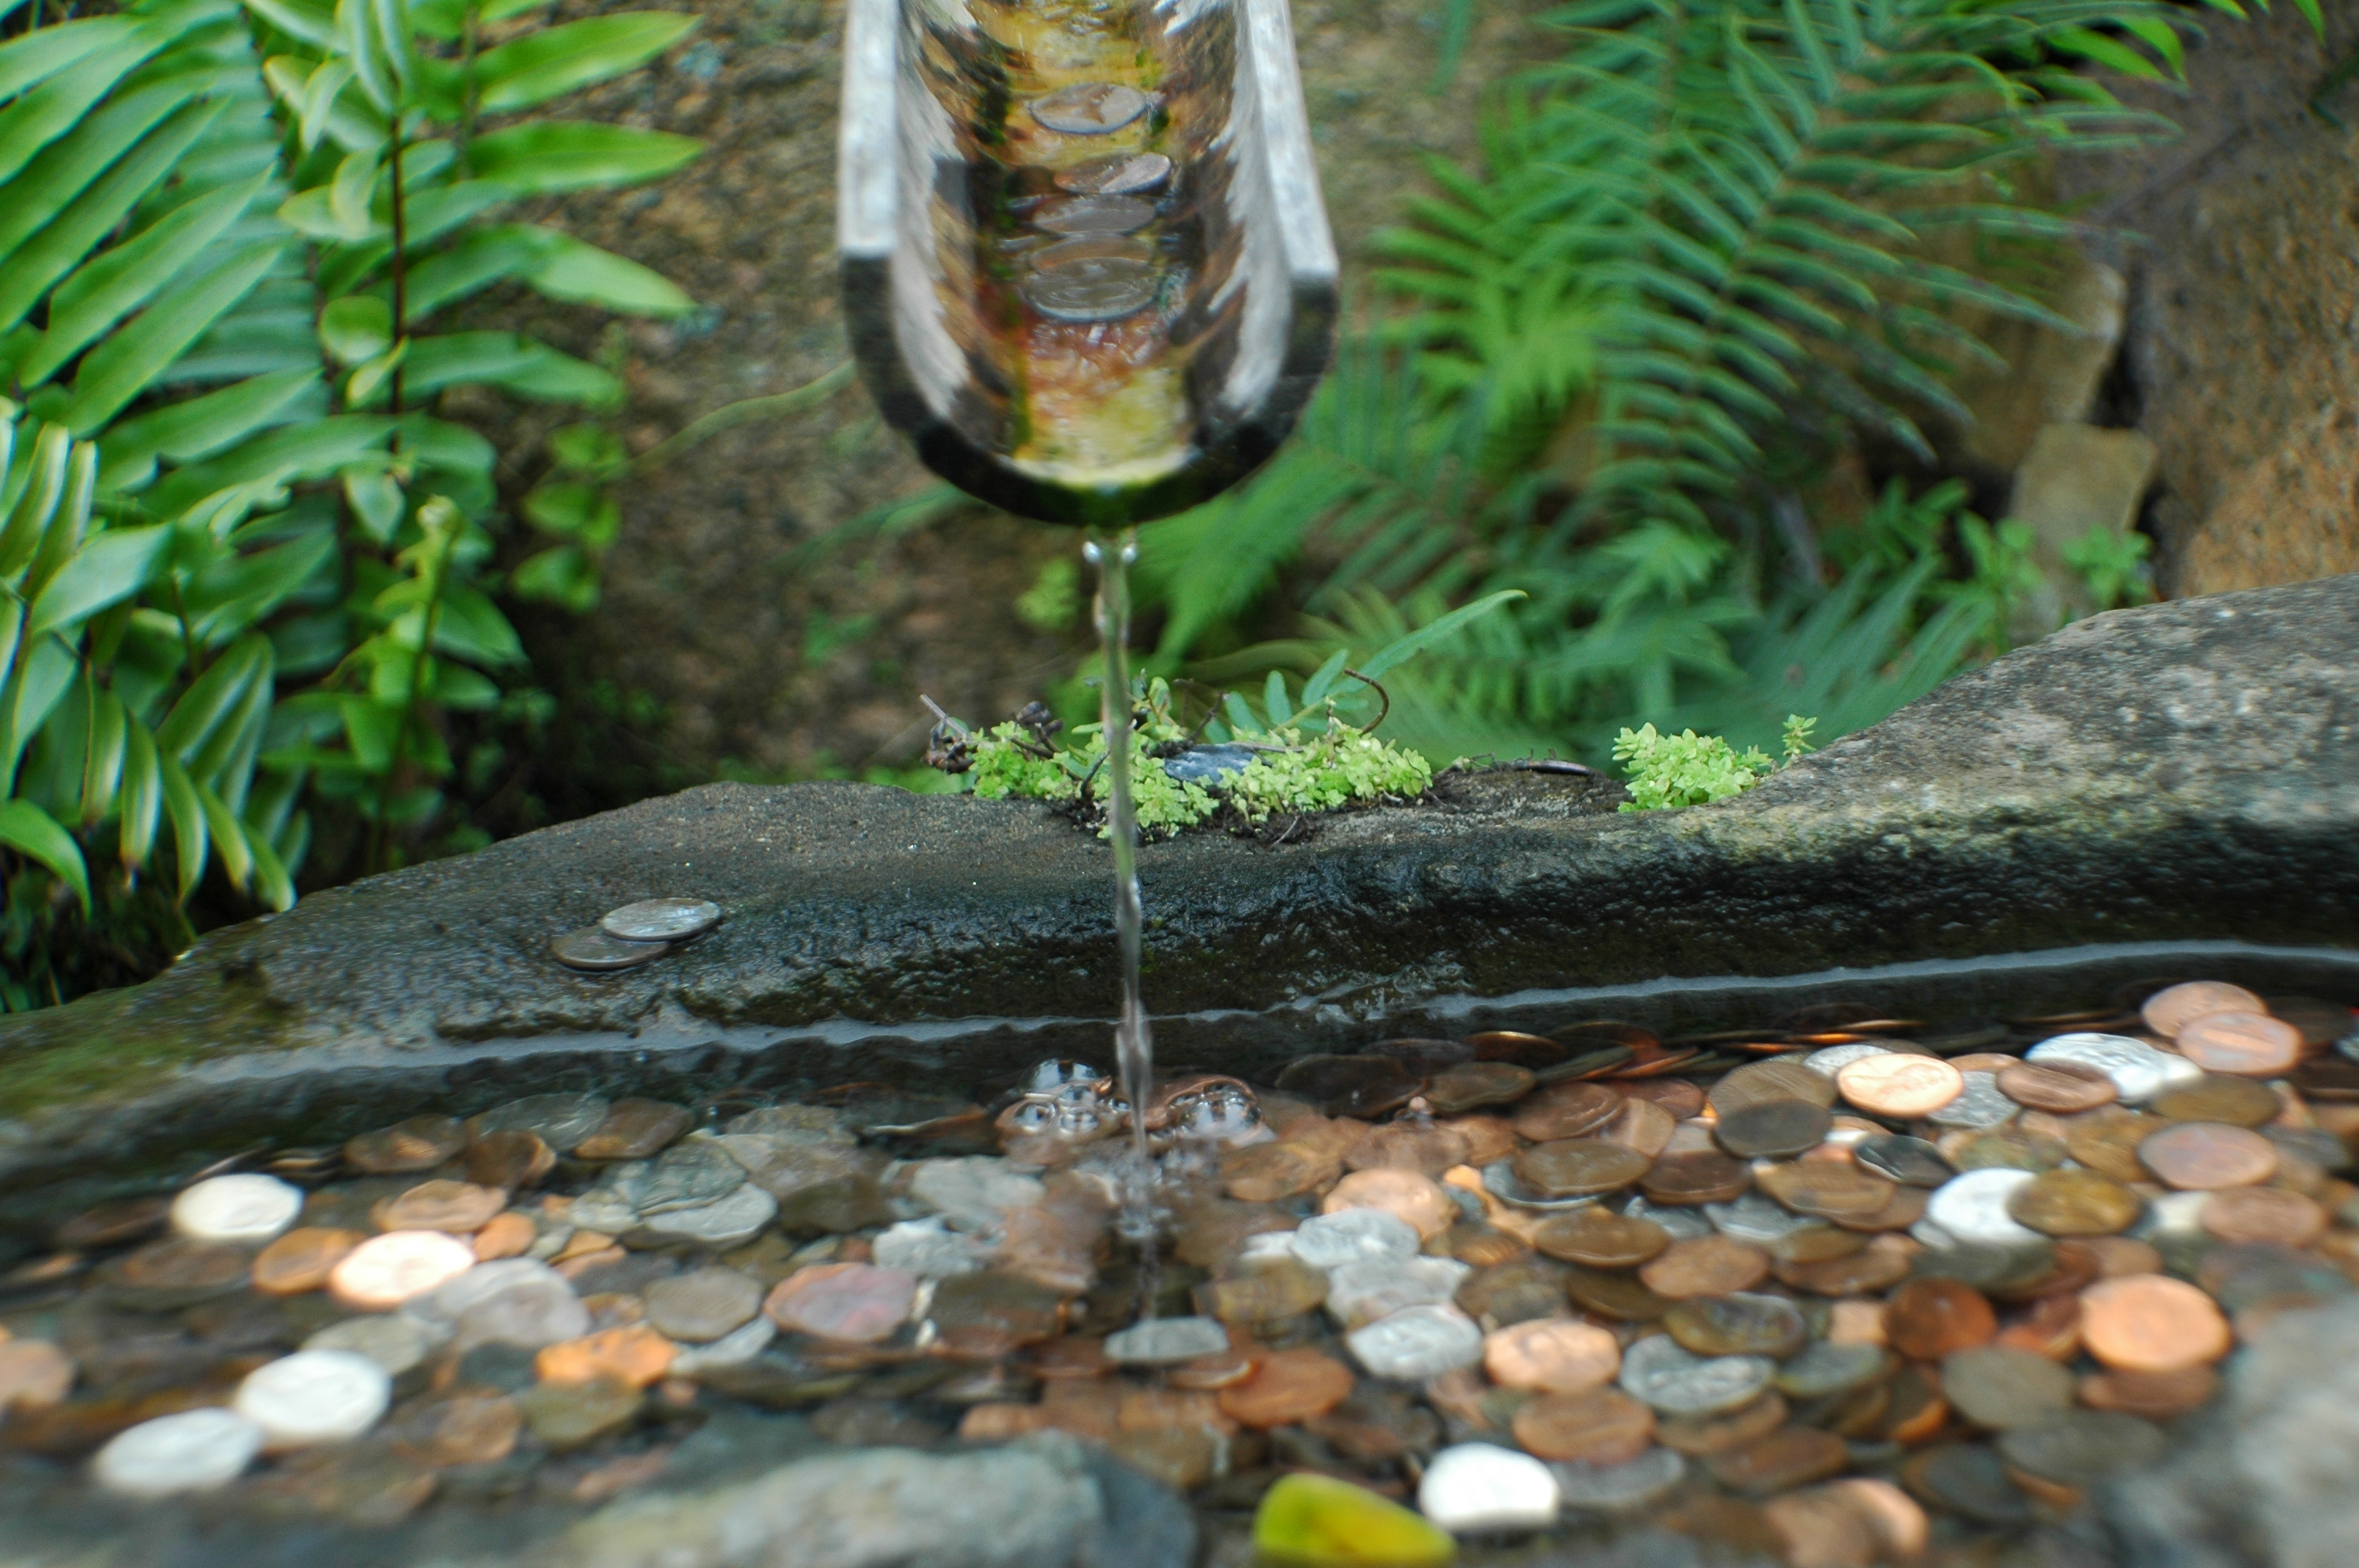 Joe Dobrow photo of coins in a fountain